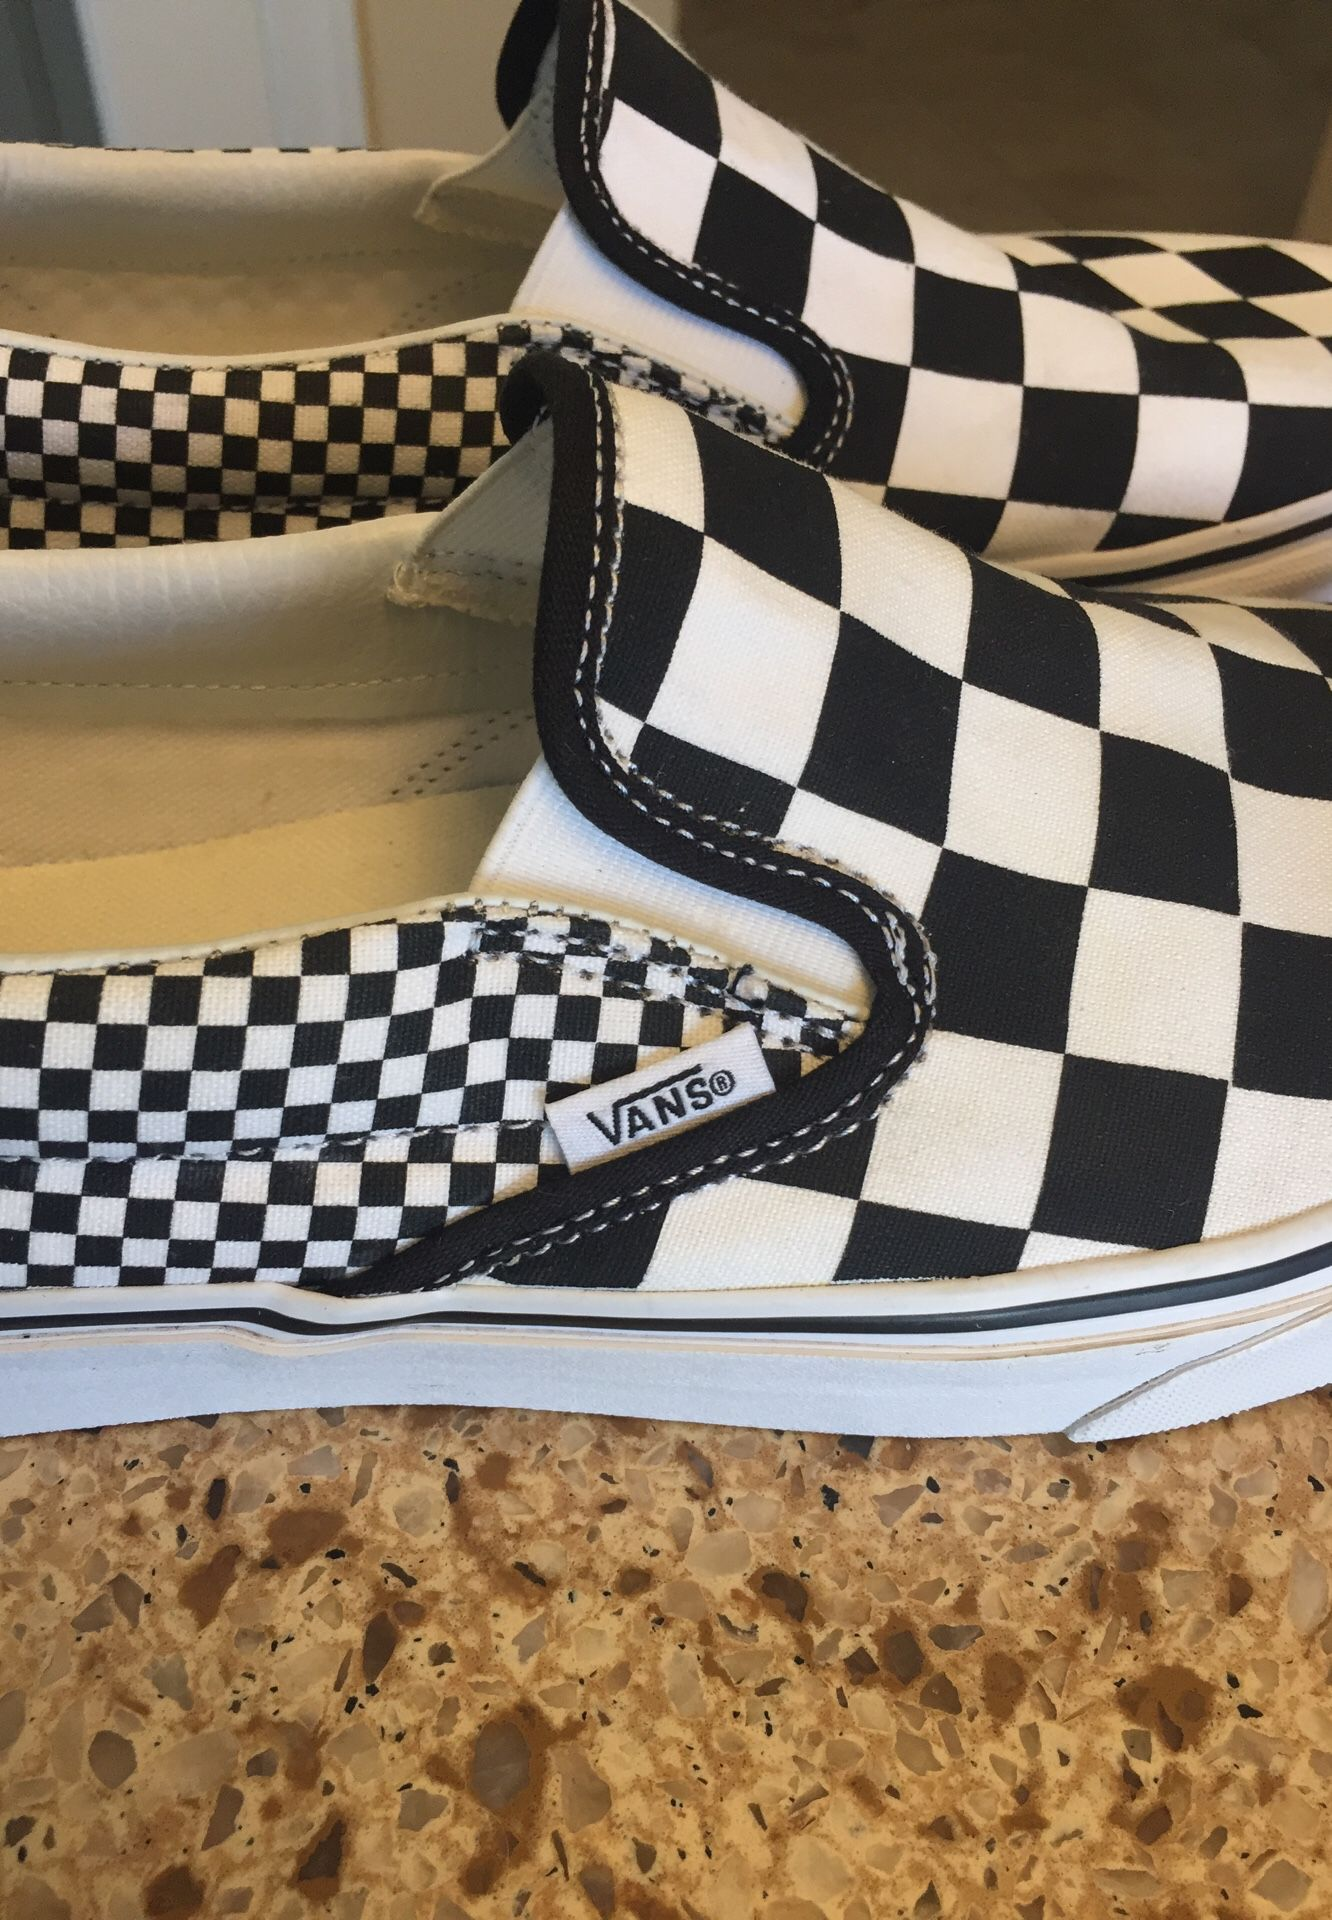 BRAND NEW VANS 🔥Classic Slip-On Checkerboard Shoes Mens Size 9.0 / Women's Size 10.5 Black/White (Porter Ranch Ca)